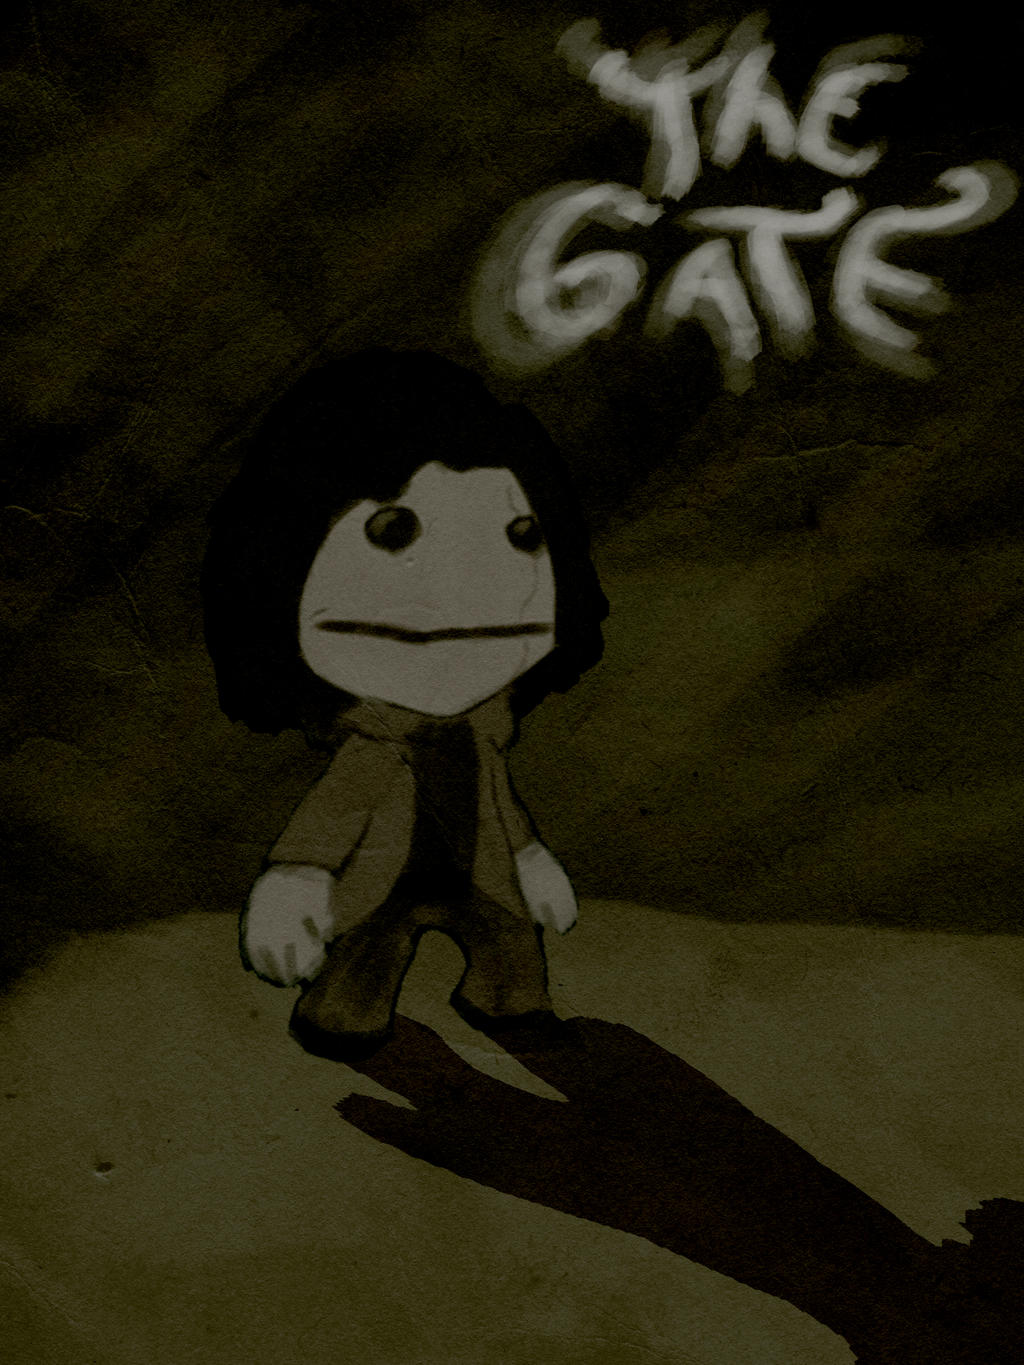 The Gate by ViggObscure